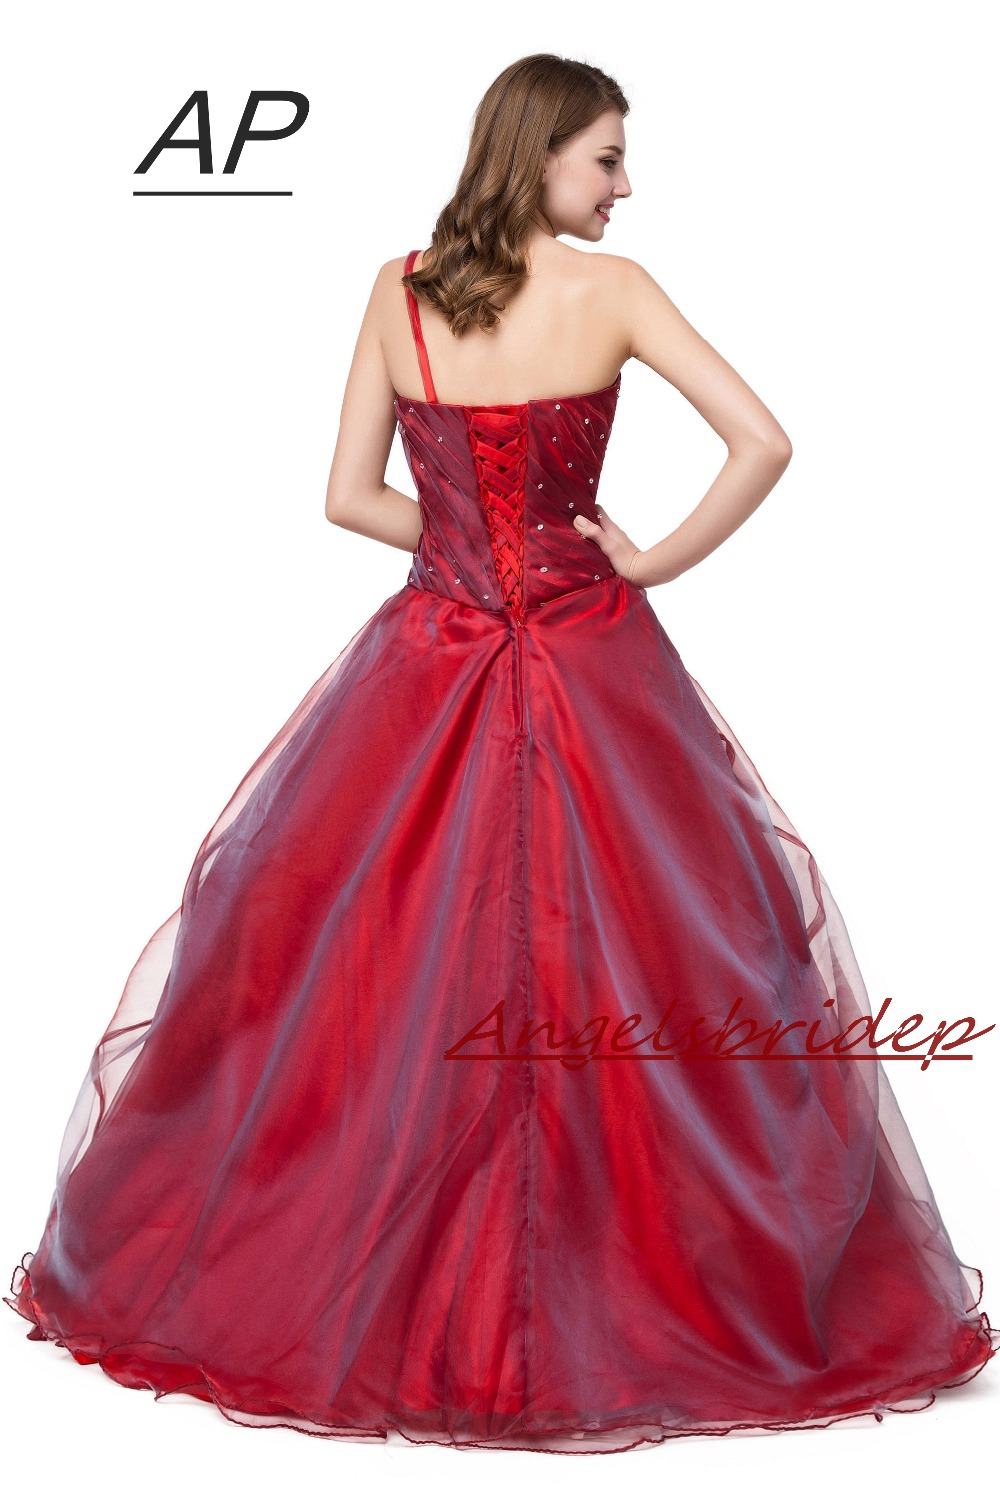 Image 2 - ANGELSBRIDEP Quinceanera Dress Red Vestidos De 15 Anos Sexy One  Shoulder Masquerade Ball Gowns Formal Party Gowns 2020 Hot Saleball  gown formalmasquerade ball gownsquinceanera dresses red